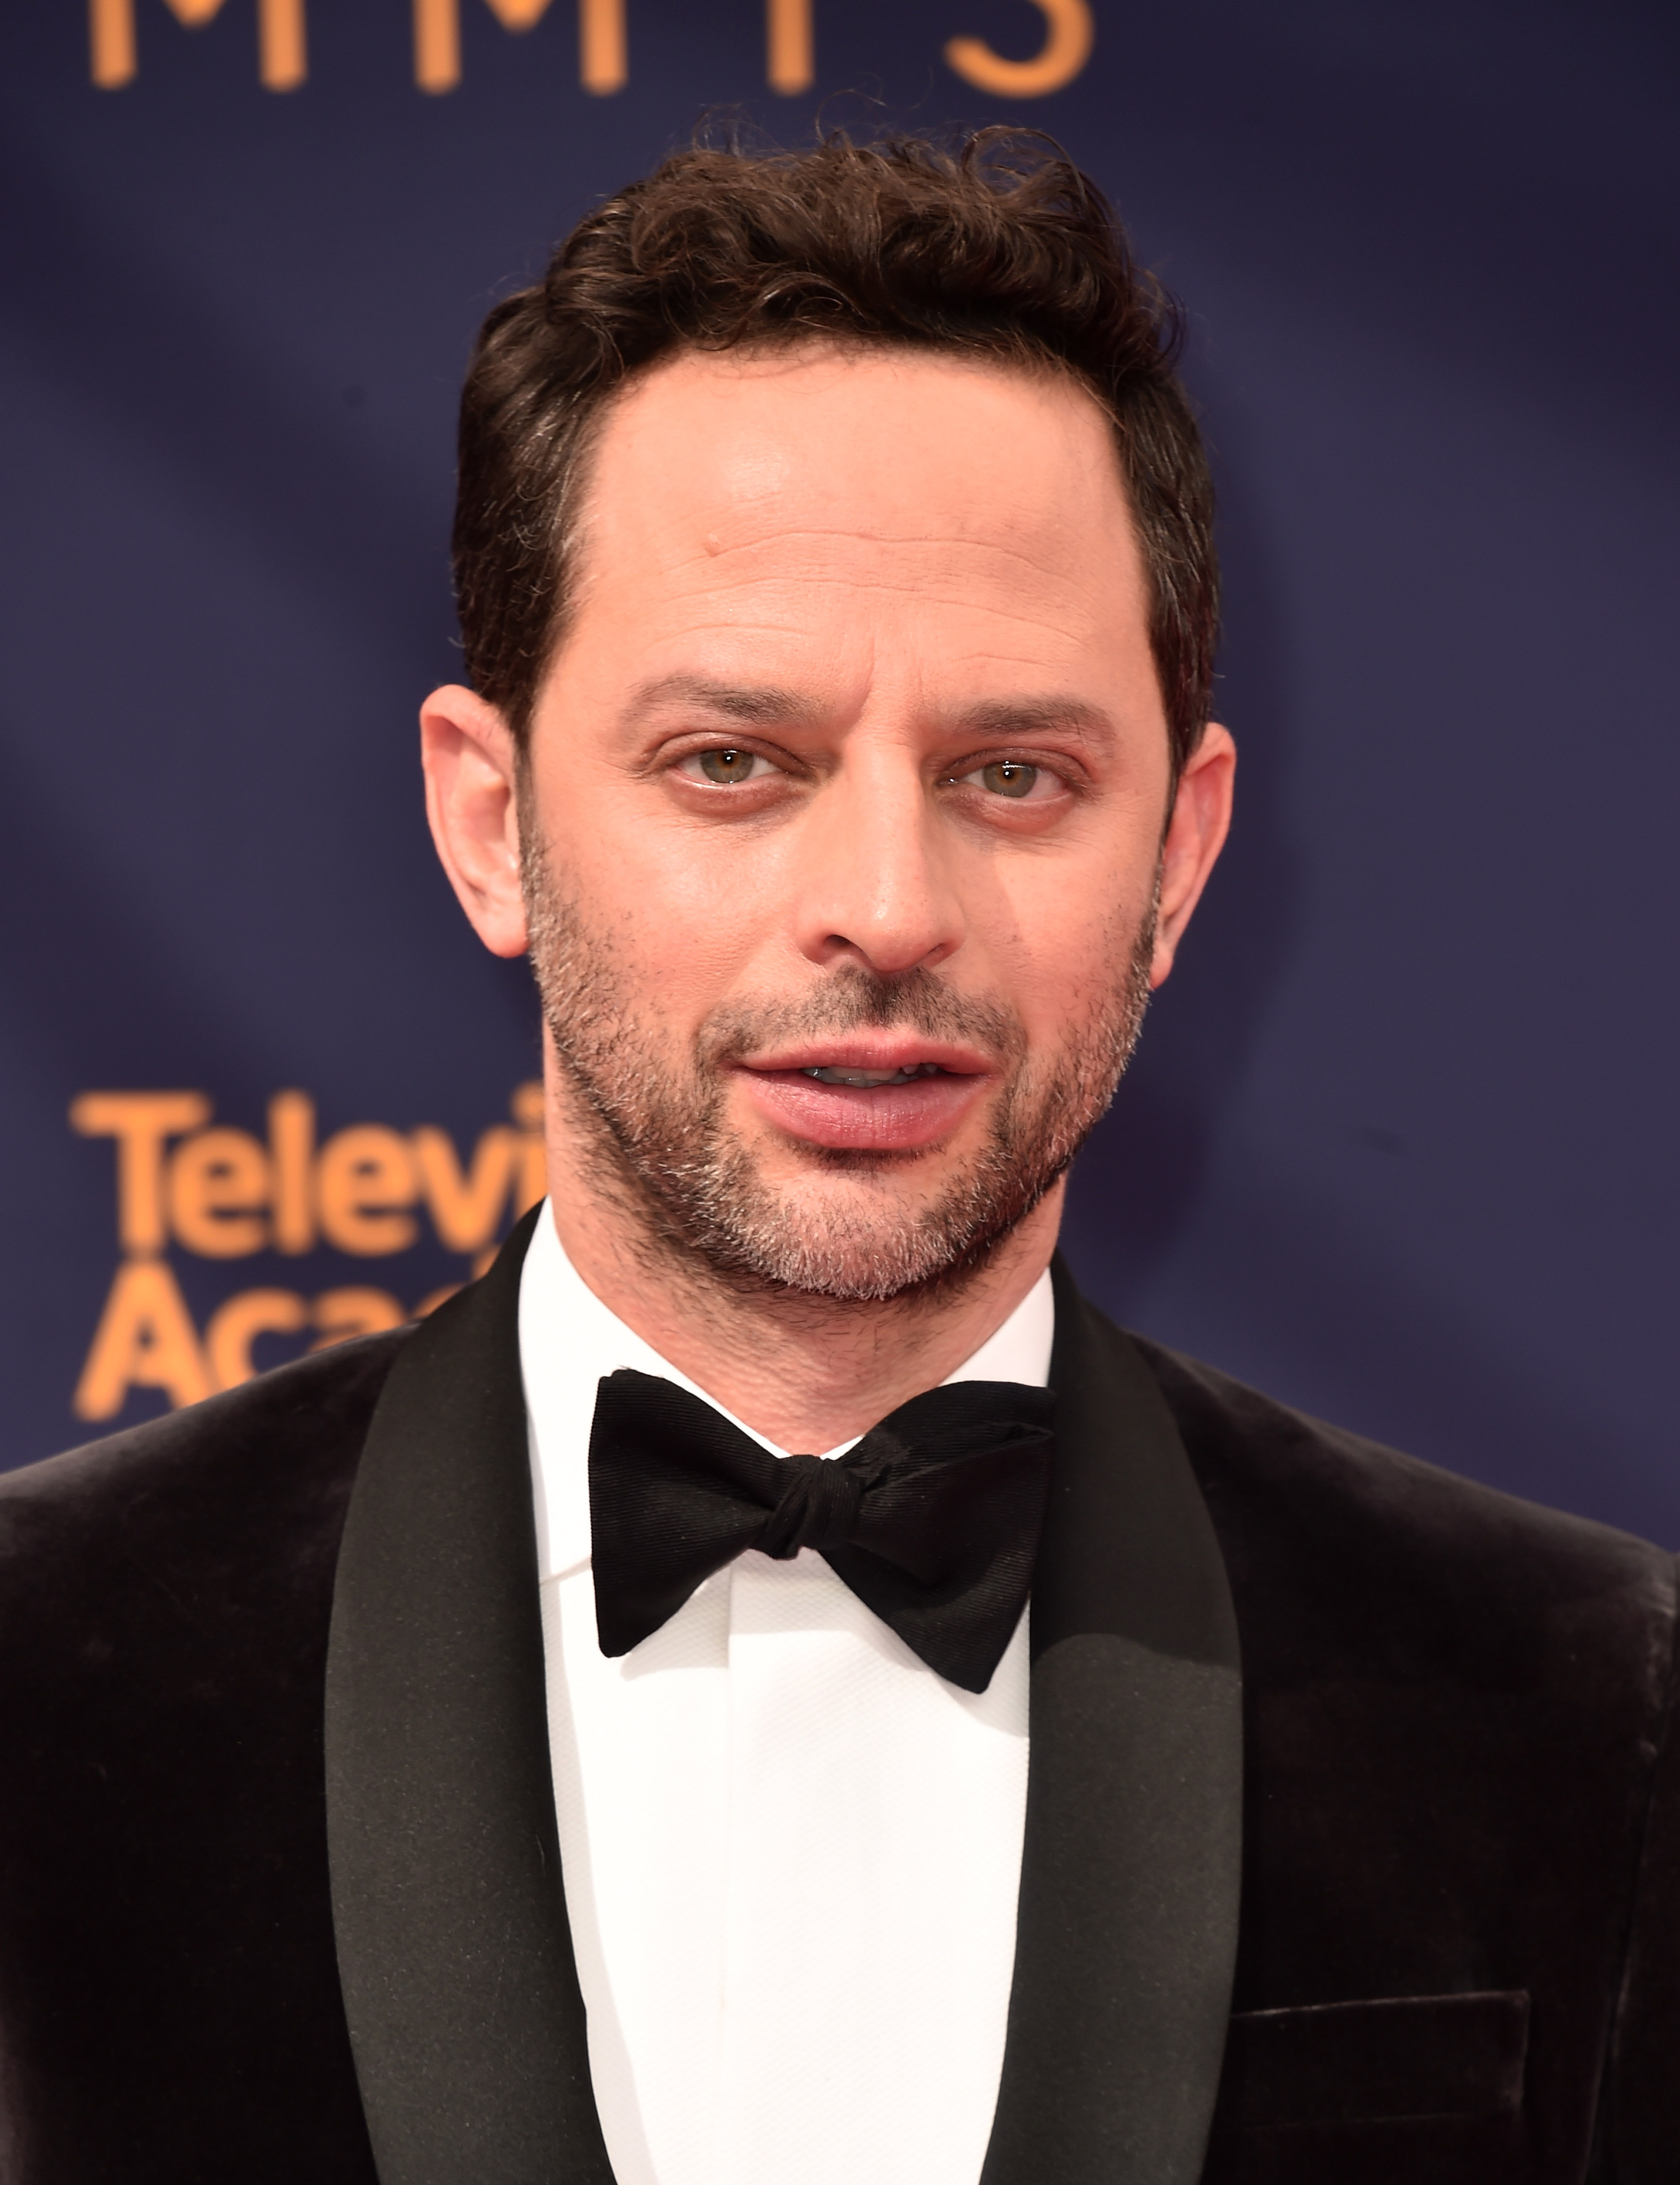 Nick Kroll attends the 2018 Creative Arts Emmys Day 2 at Microsoft Theater on September 9, 2018, in Los Angeles, California. (Getty Images)